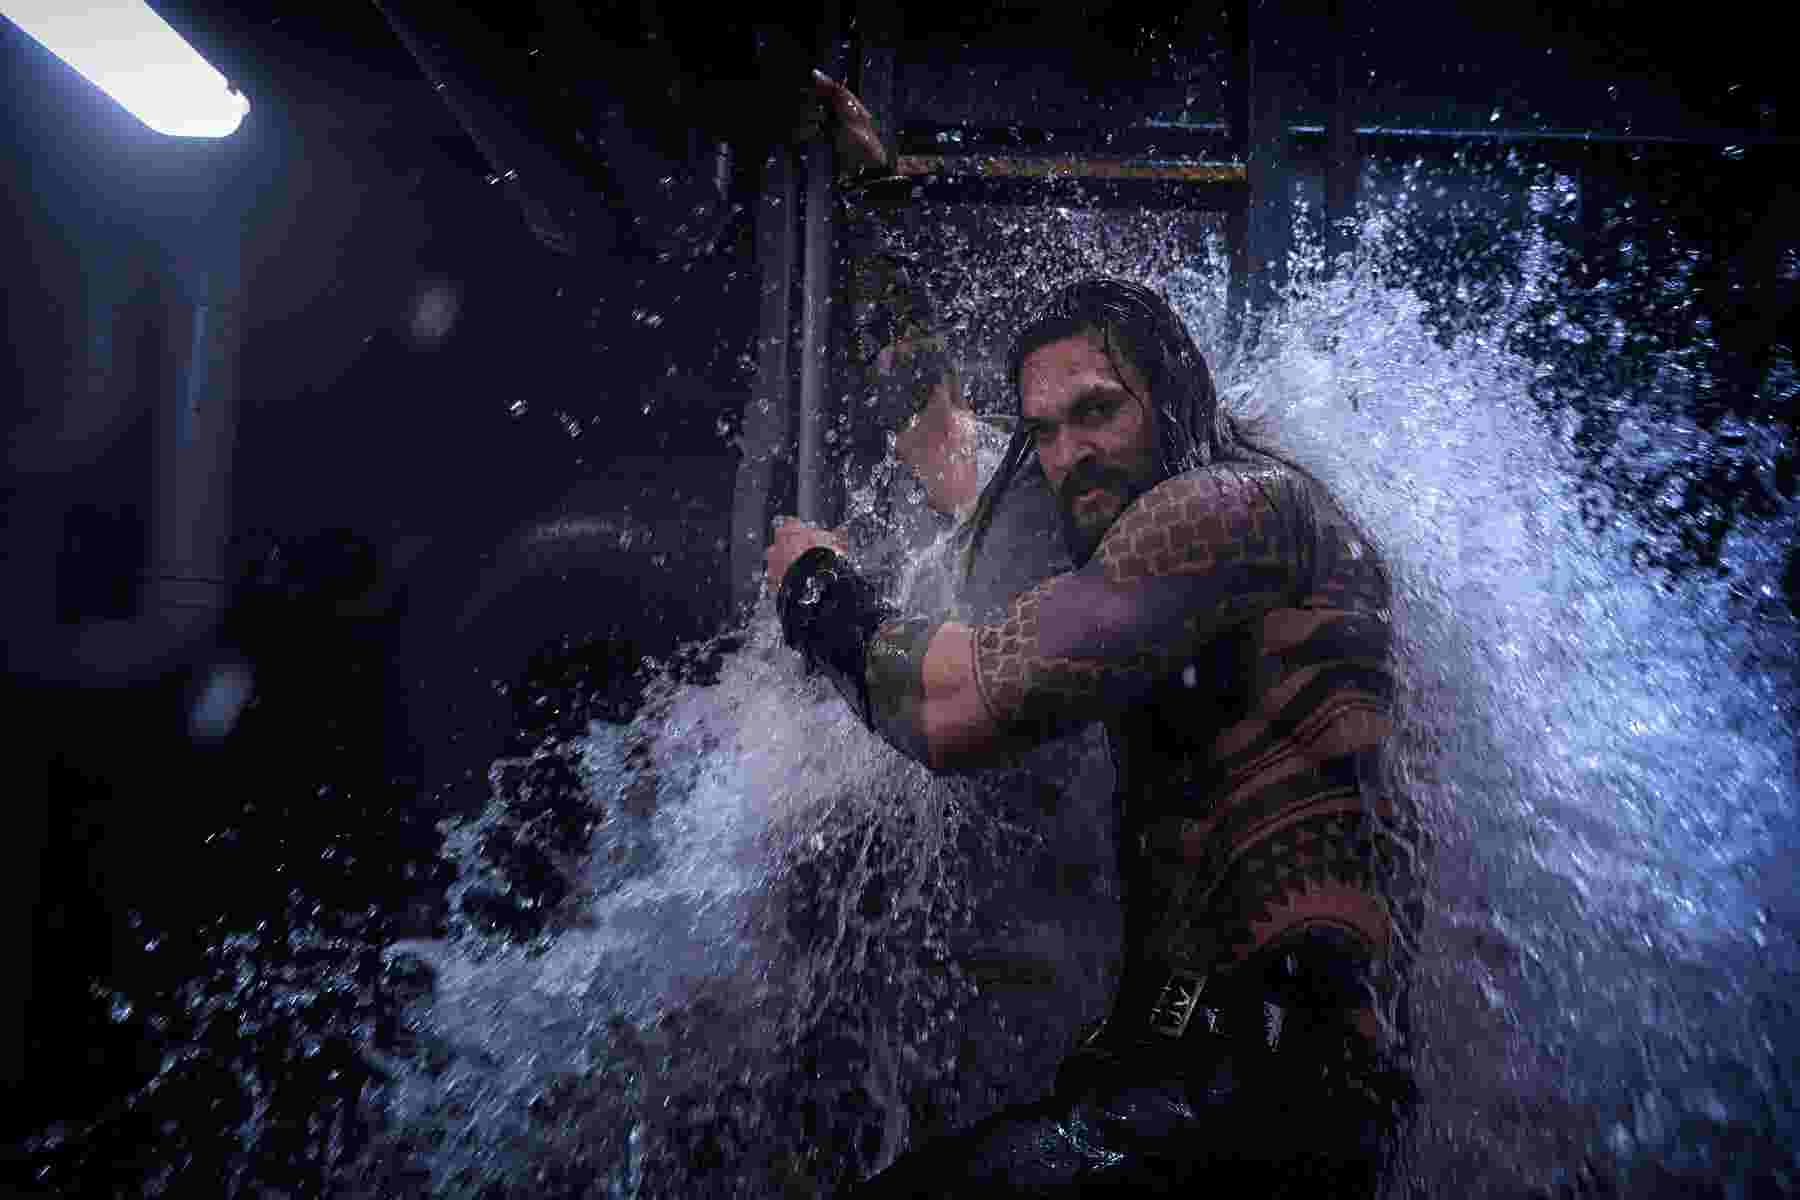 Aquaman 5 Things You Need To Know About James Wans Watery Superhero Epic